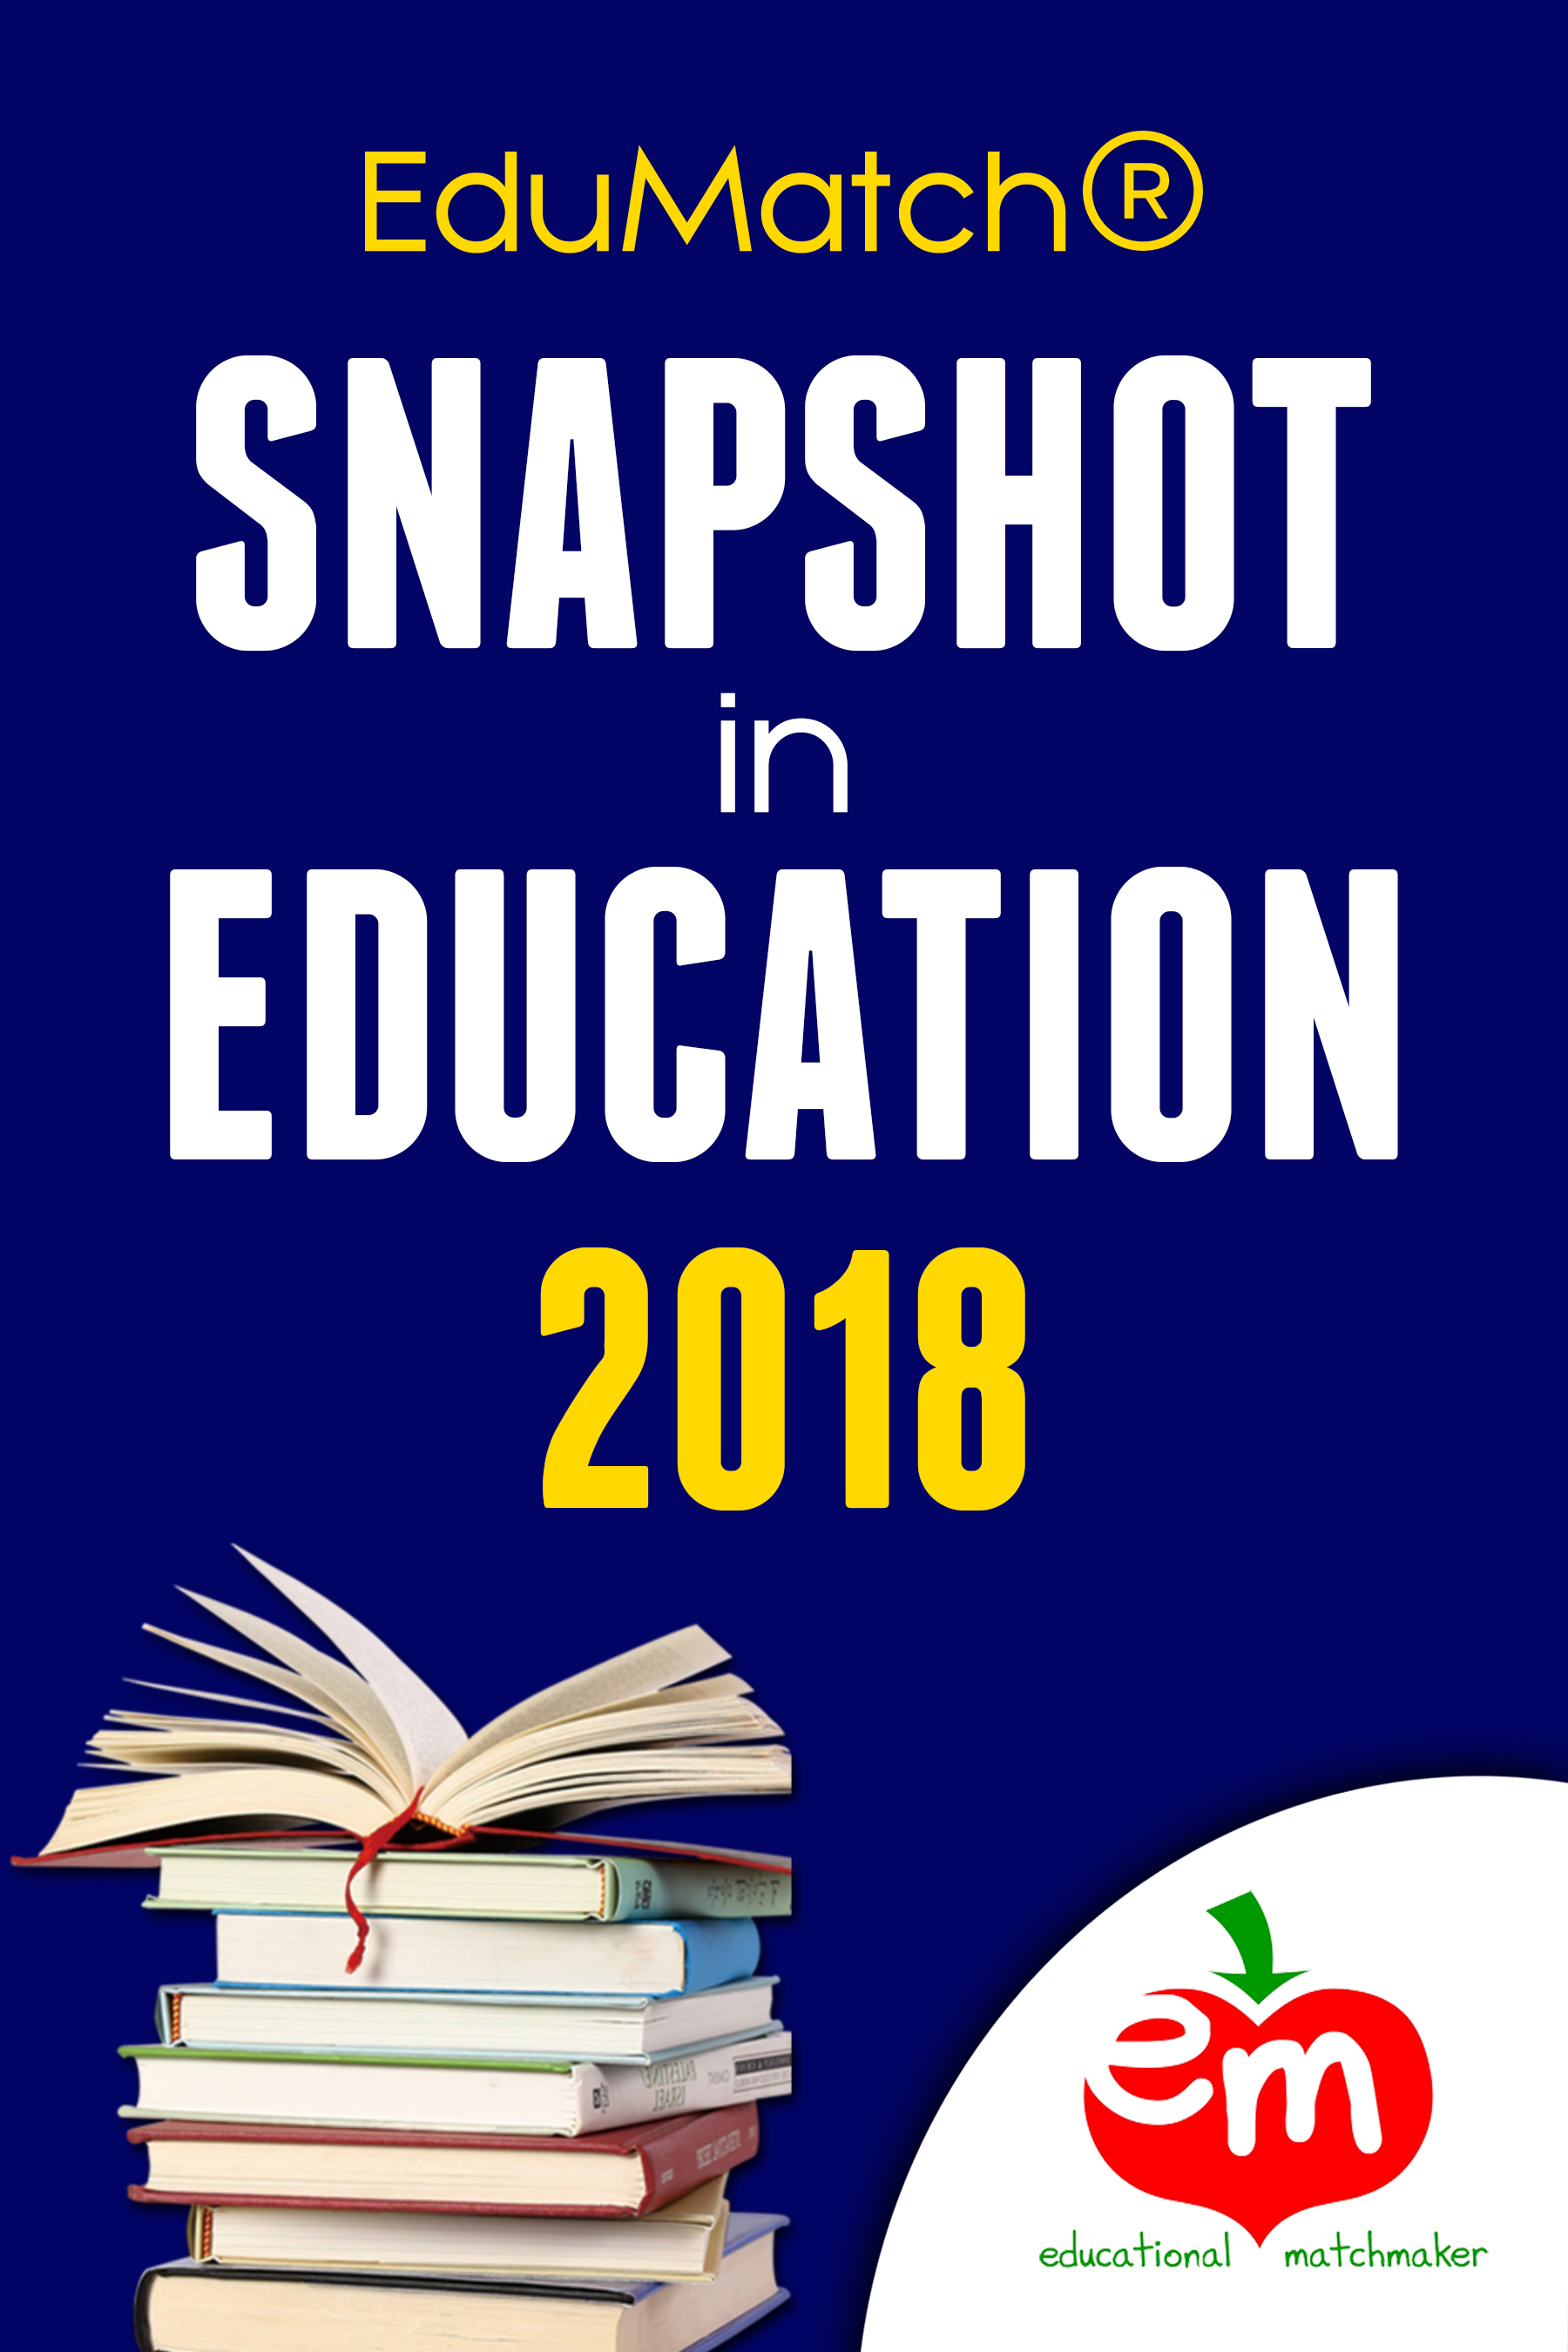 EduMatch Snapshot in Education (2018)